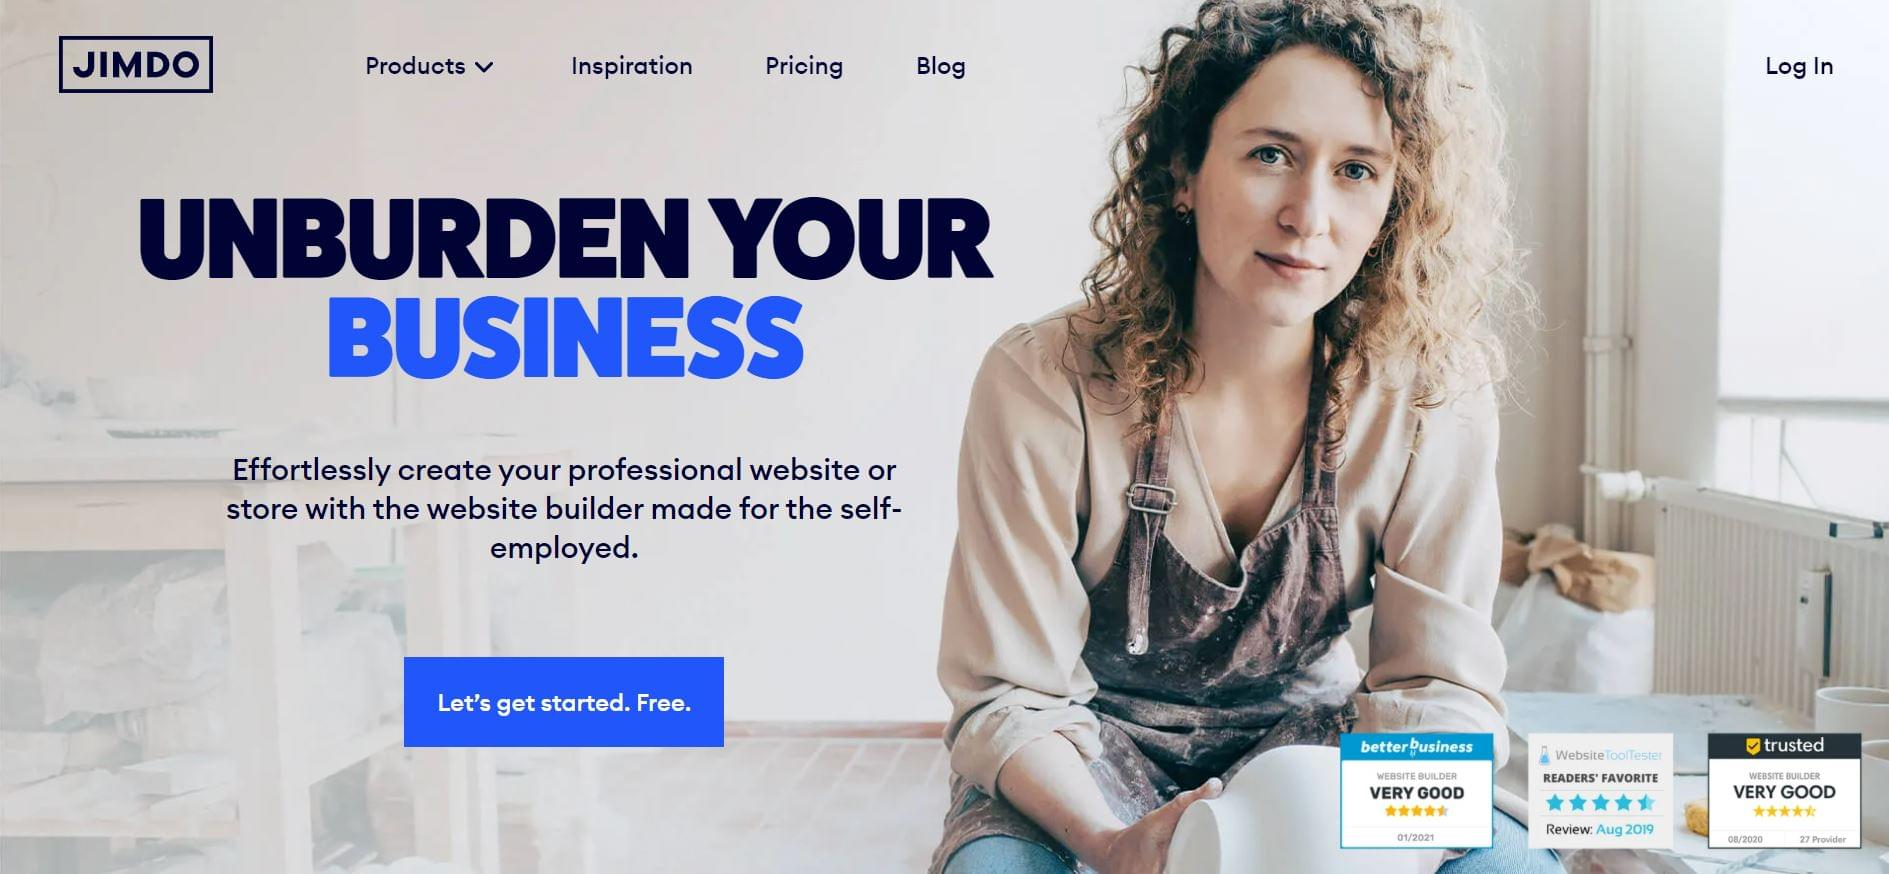 The Jimdo landing page